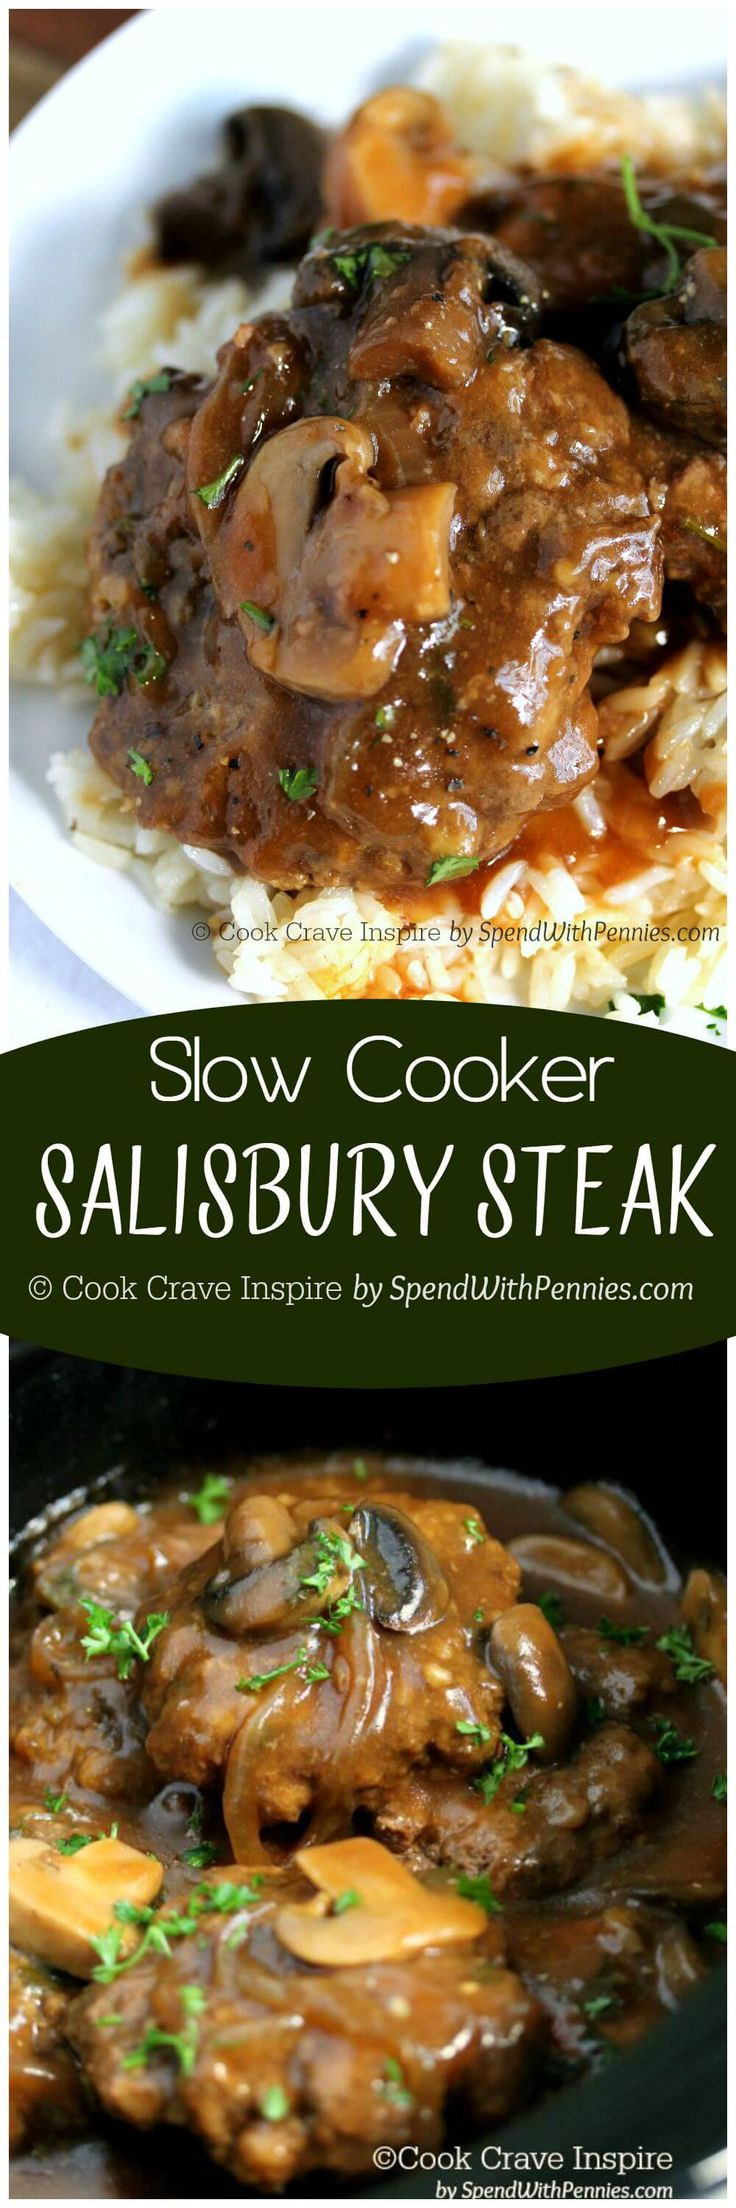 A COLLECTION OF MANY RECIPES just like this recipe for Slow Cooker Salisbury Steak